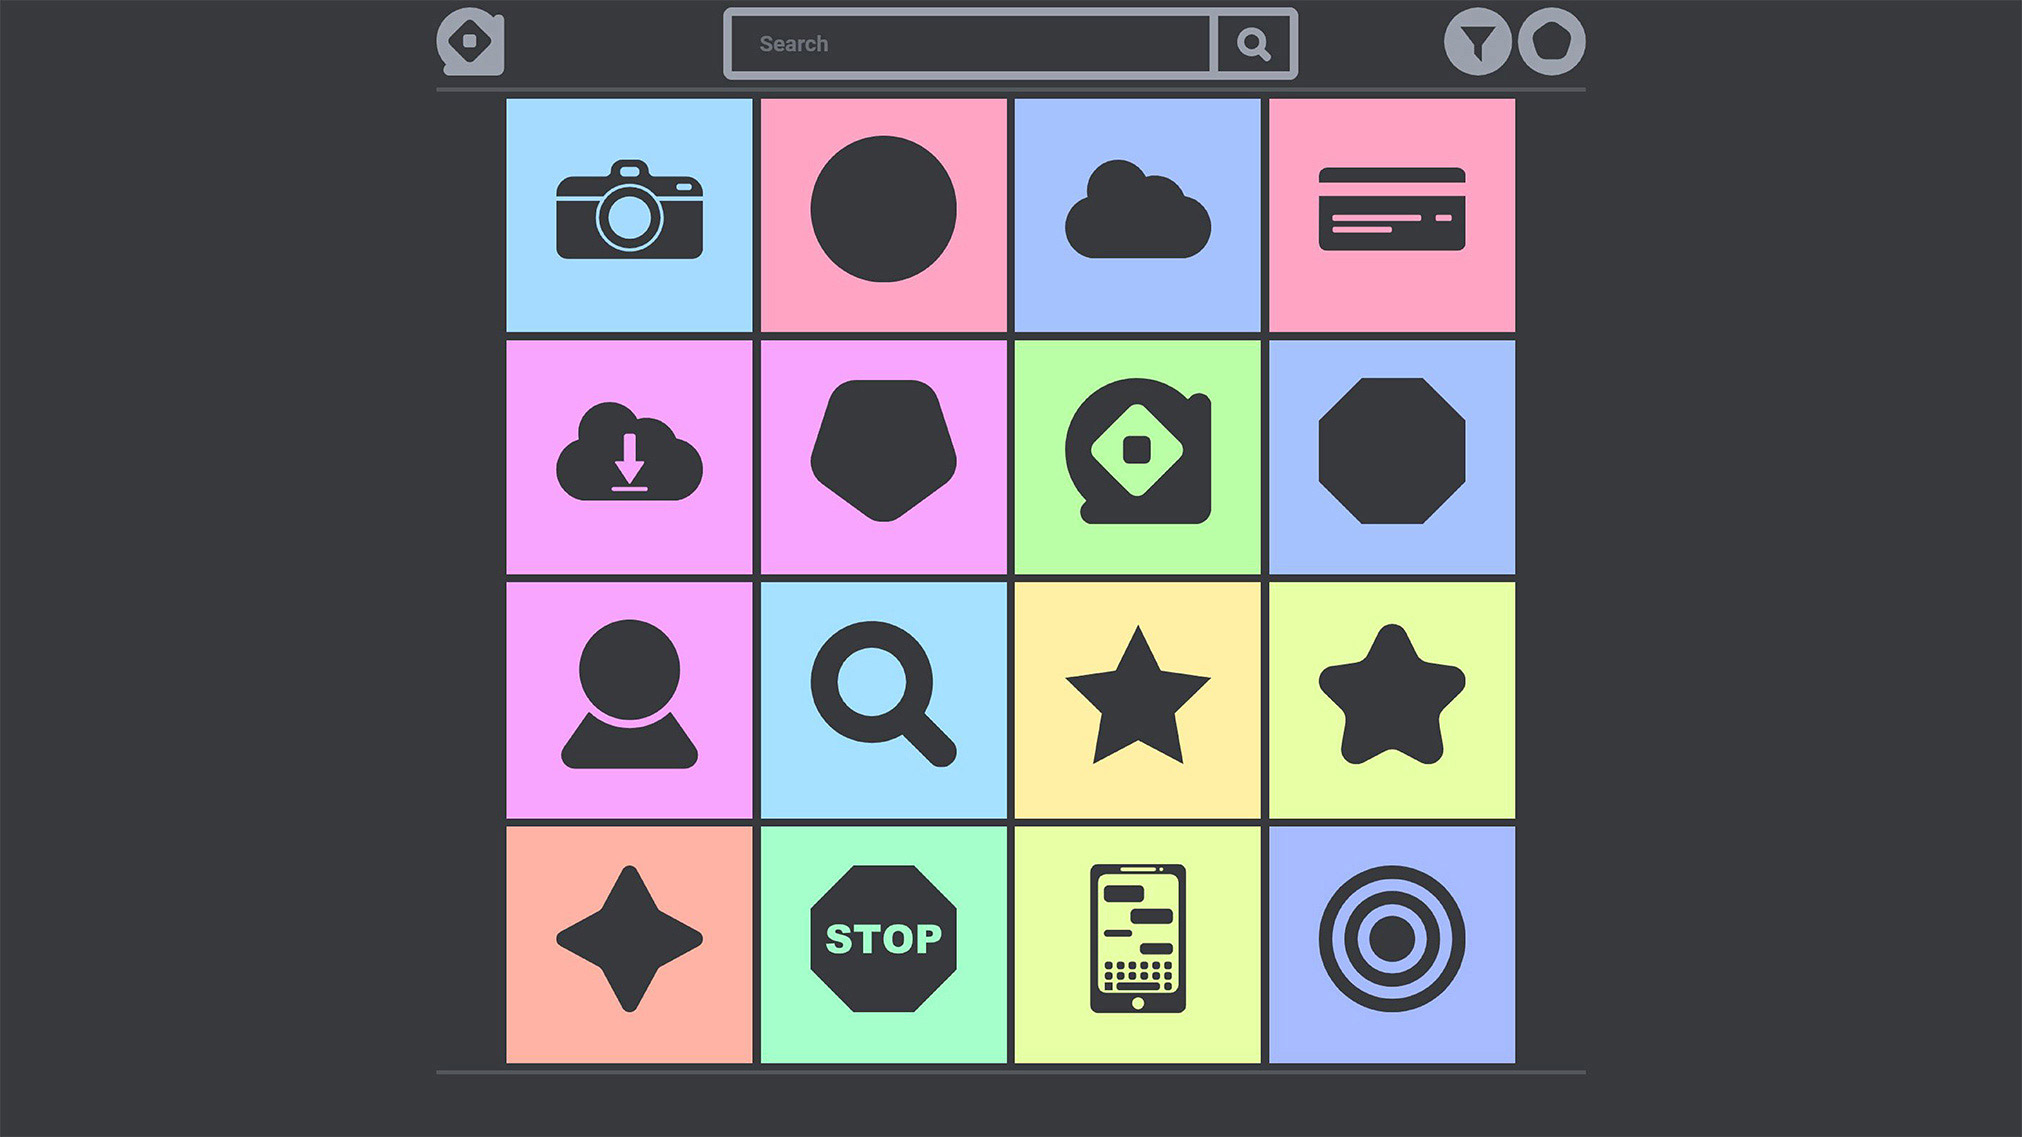 A stock iconography website marketed for graphic designers.